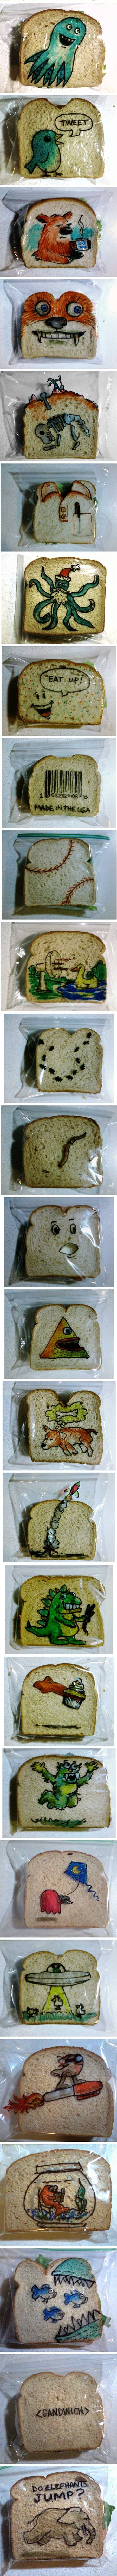 This geeky dad decided to surprise his kids with fun doodles on their sandwich bags. LOVE THIS!!!